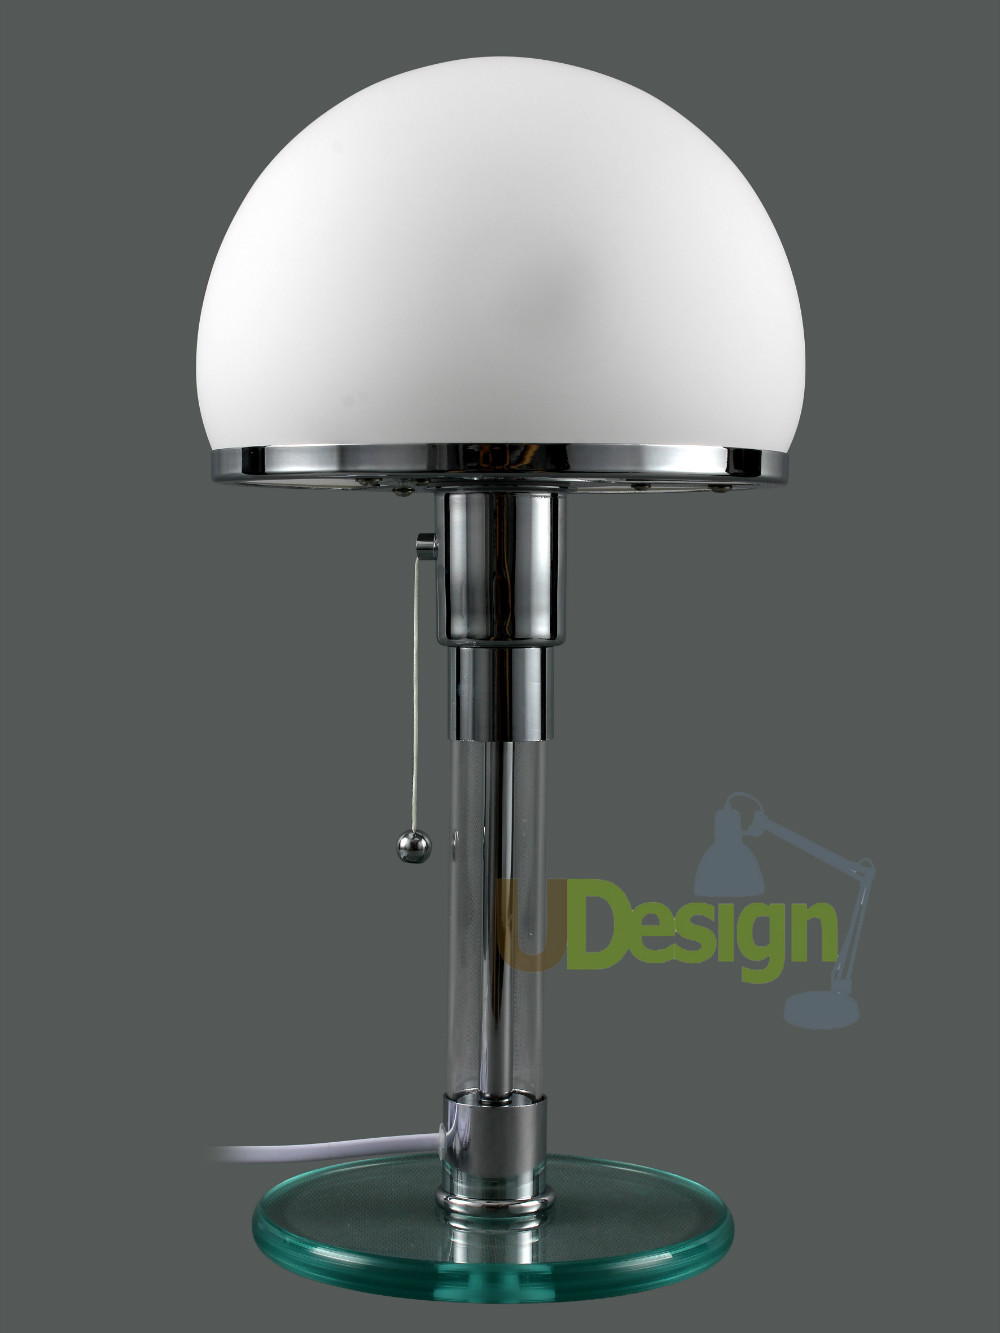 (Shipping cost can be negotiated) Replica Bauhaus lamp Wilhelm Wagenfeld table lamp -Bauhaus lamp michael siebenbrodt bauhaus